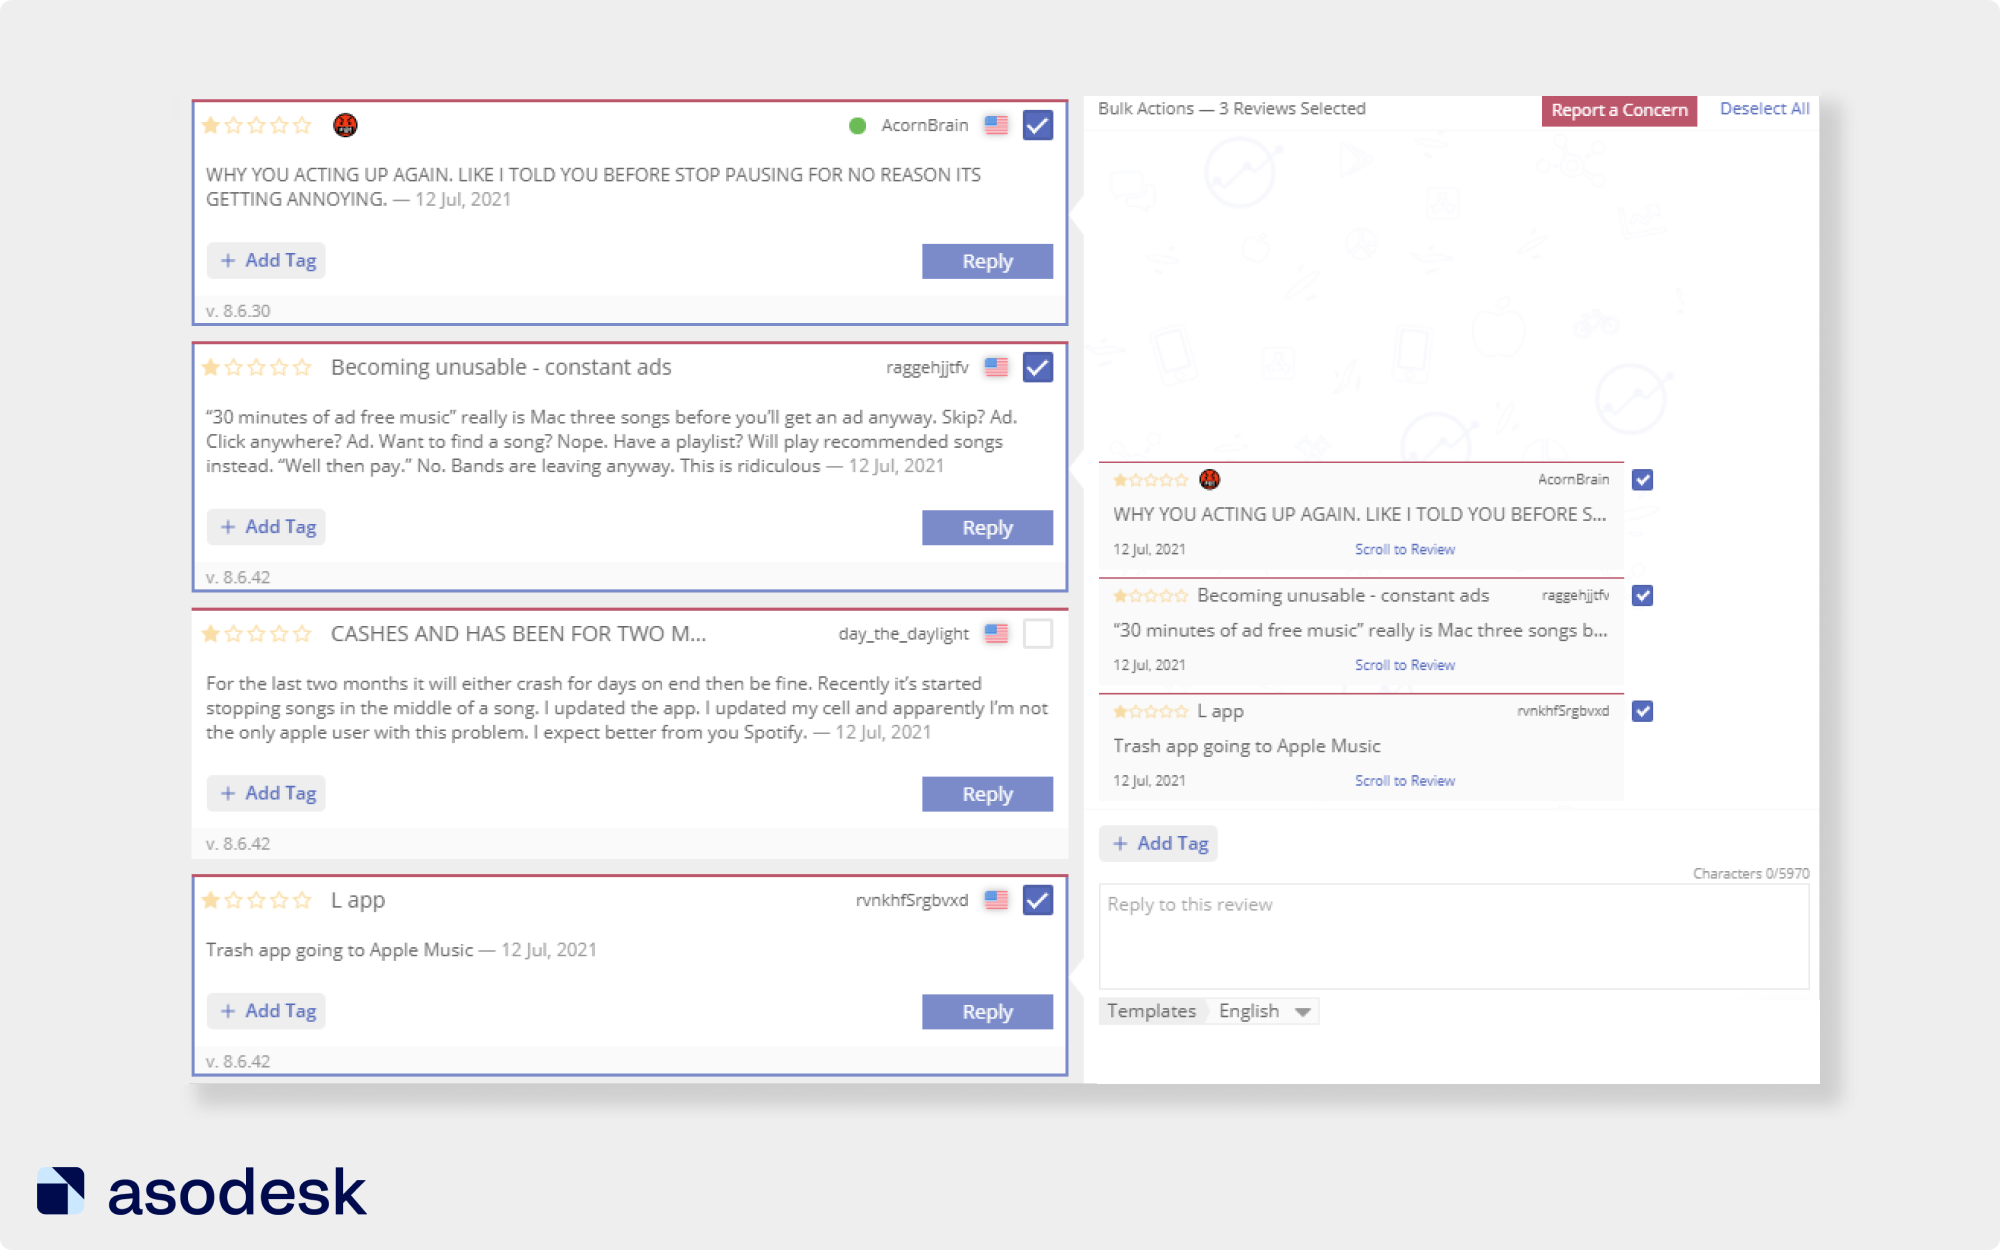 You can report one or more reviews of an app in the App Store or Google Play via Asodesk